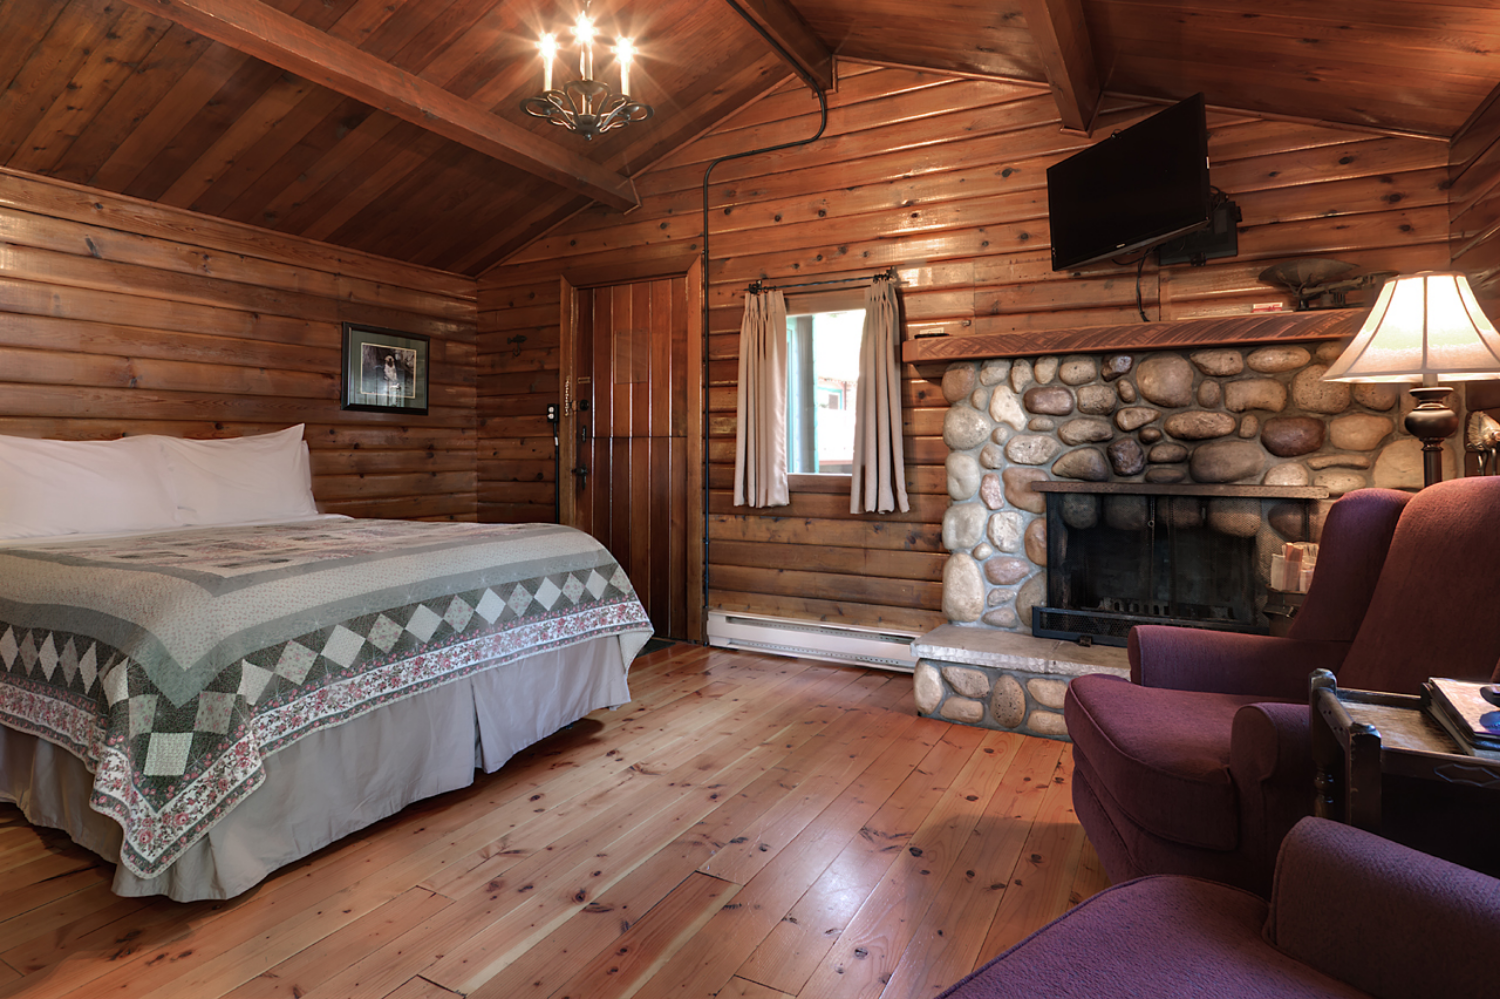 CABIN 6 - Studio  Cozy cabin combines old rustic ambiance with a charming view. From $219-$295